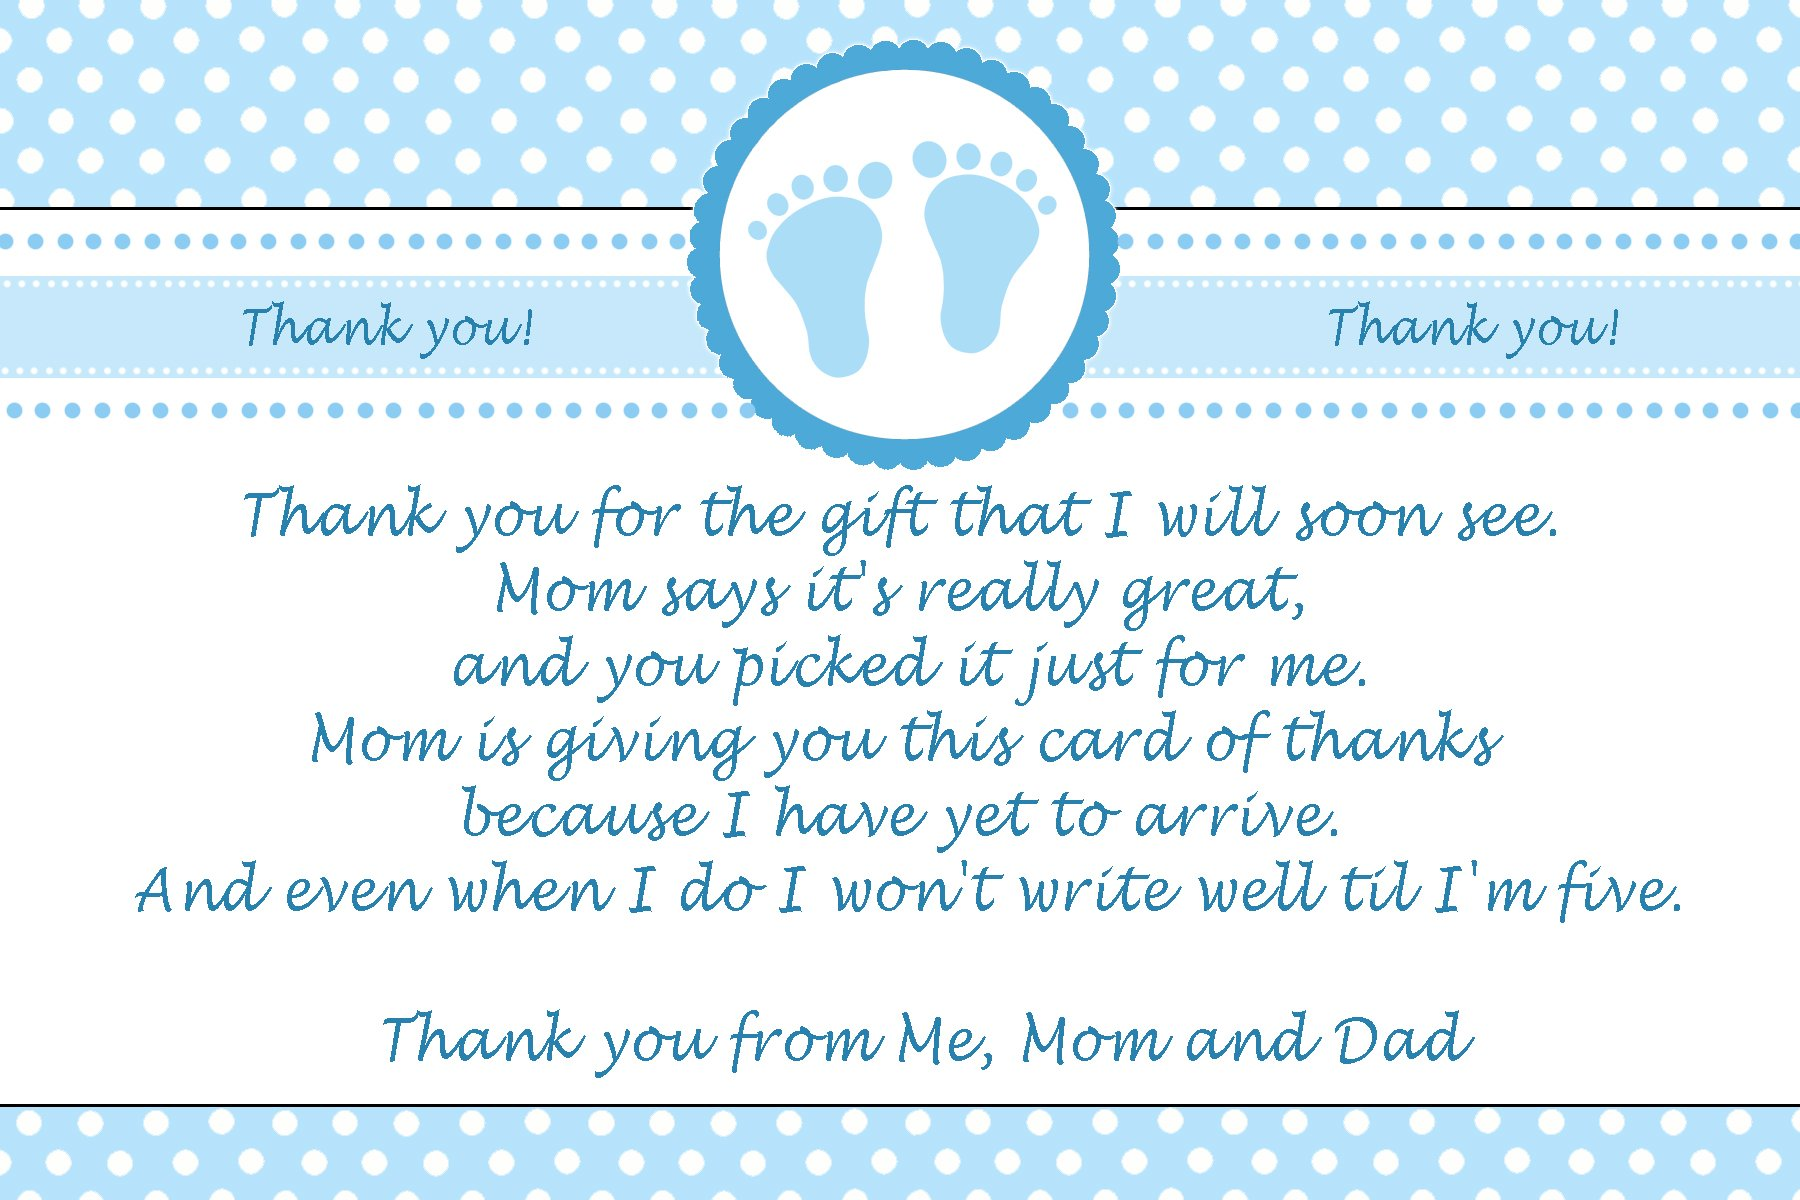 30 Thank You Cards Blue Polka Dots Baby Boy Shower + 30 White Envelopes